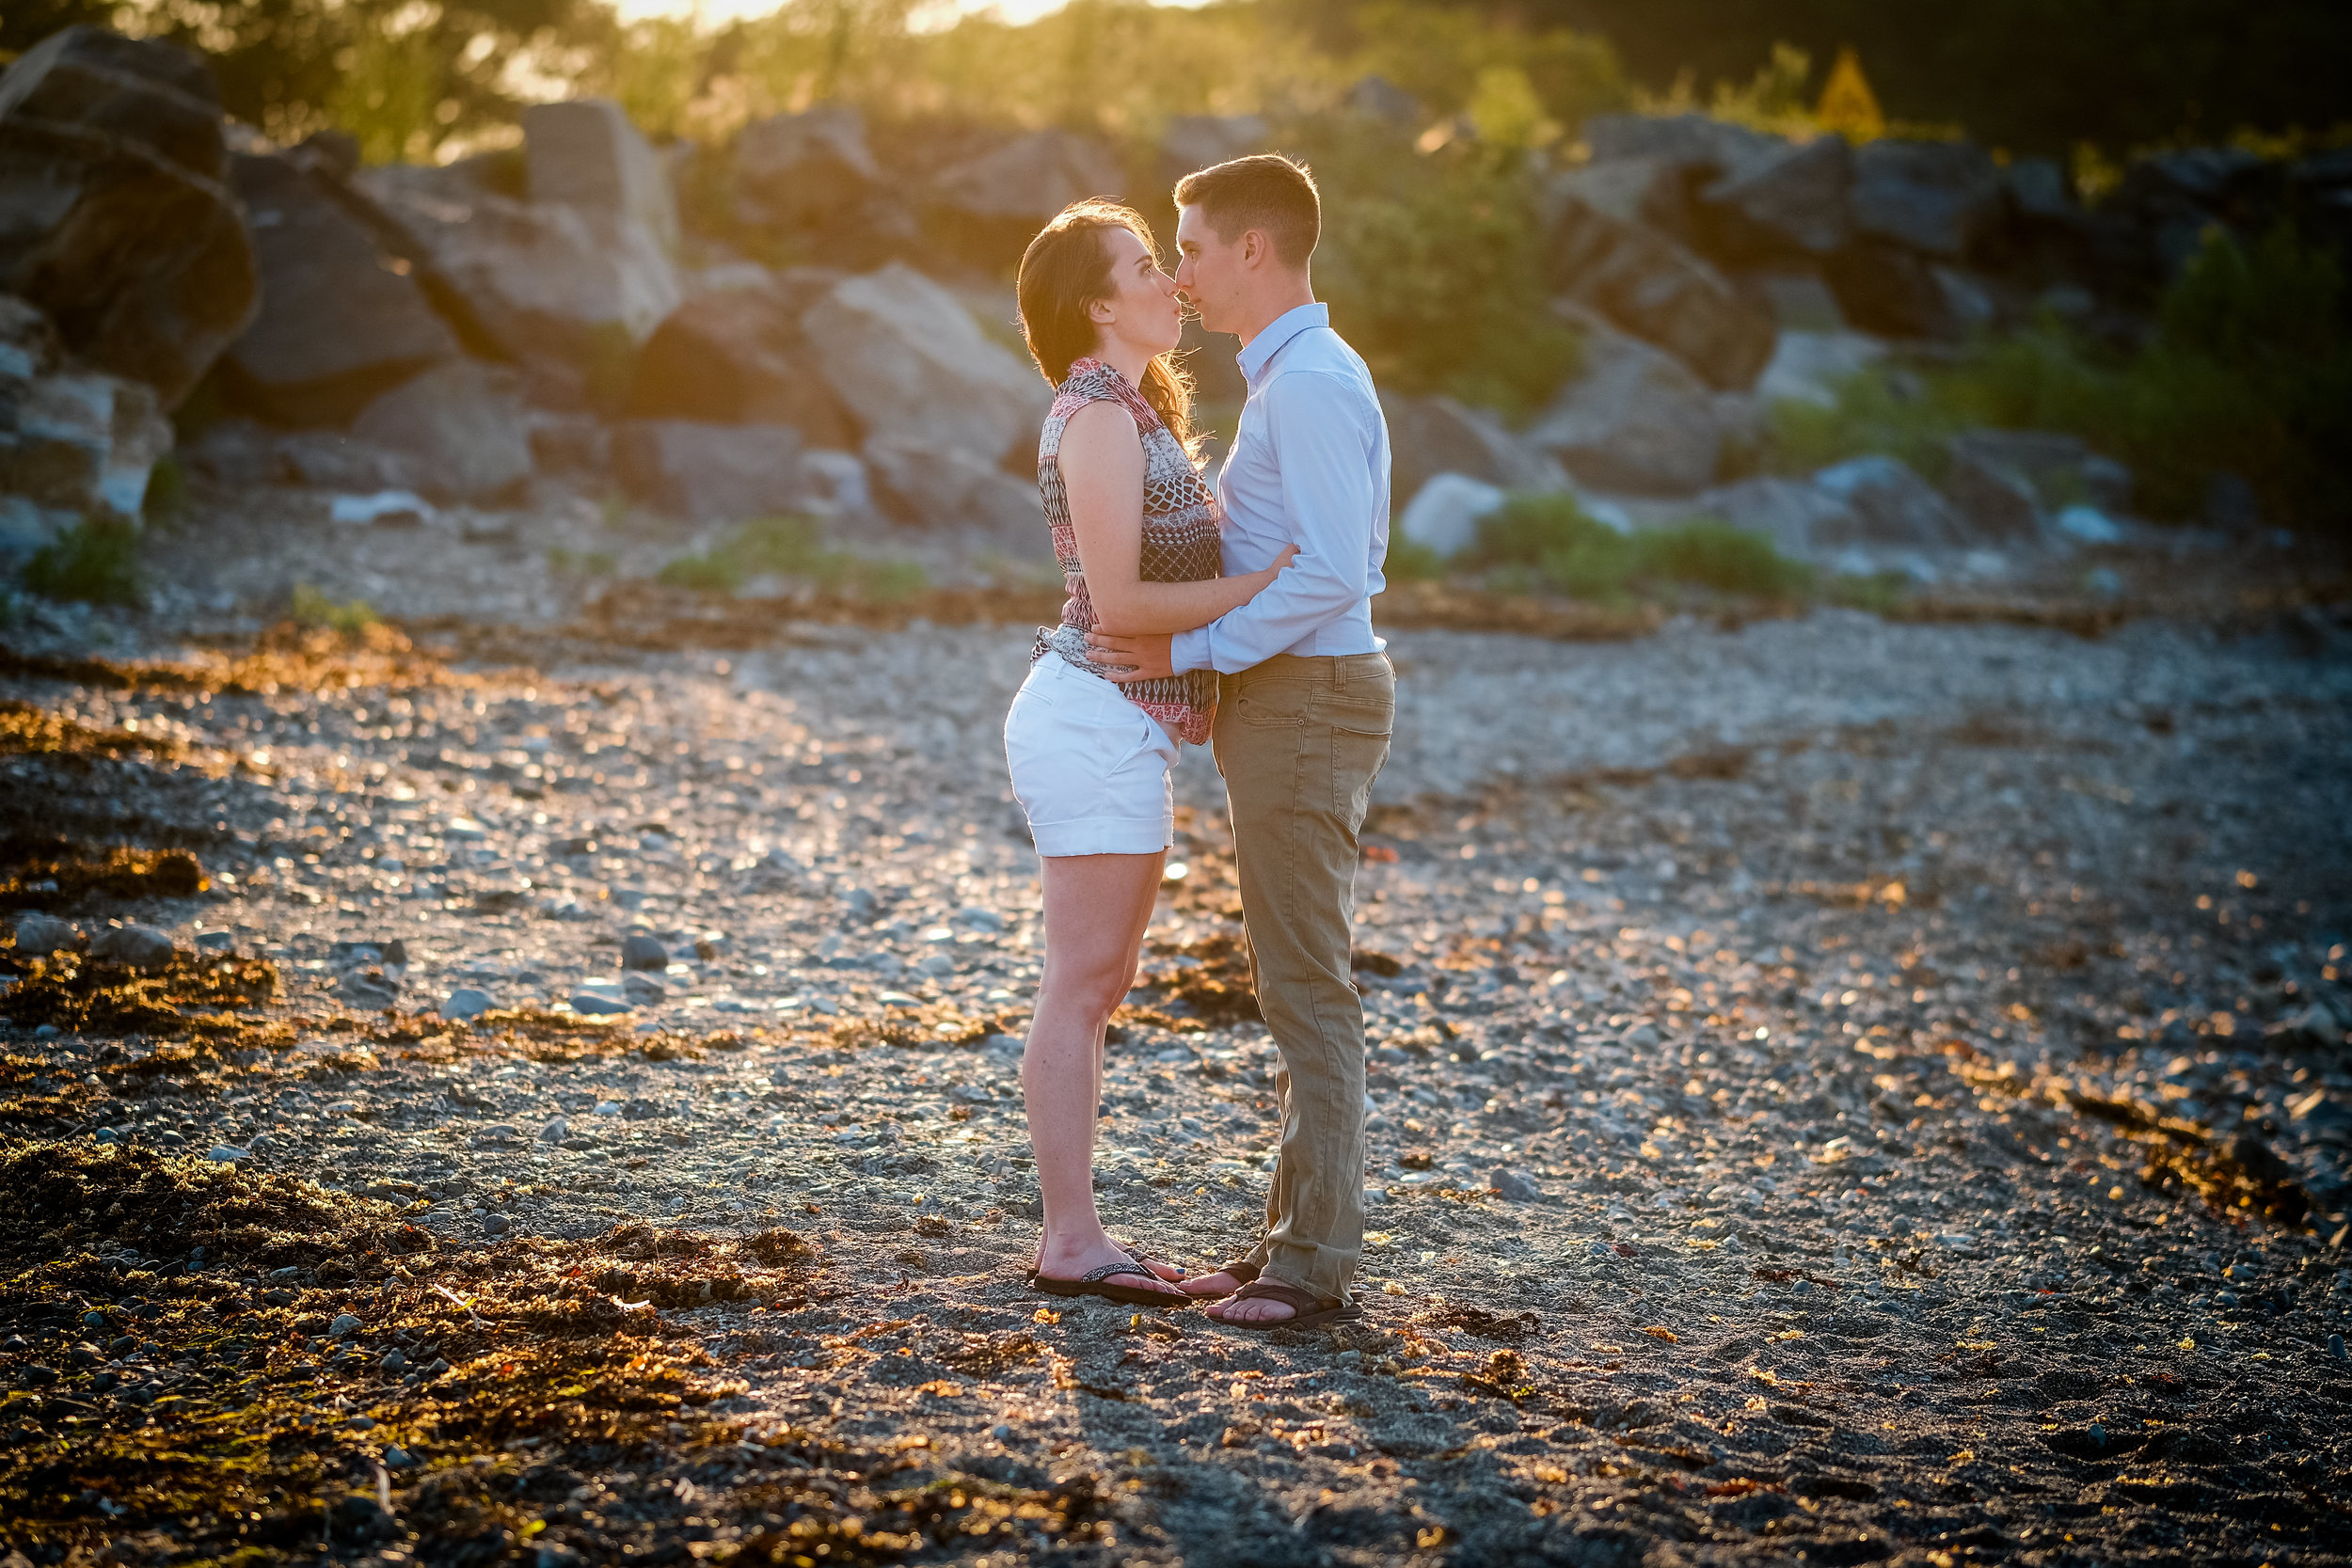 Periwinkle-Cove-Engagement-Photography-174.jpg